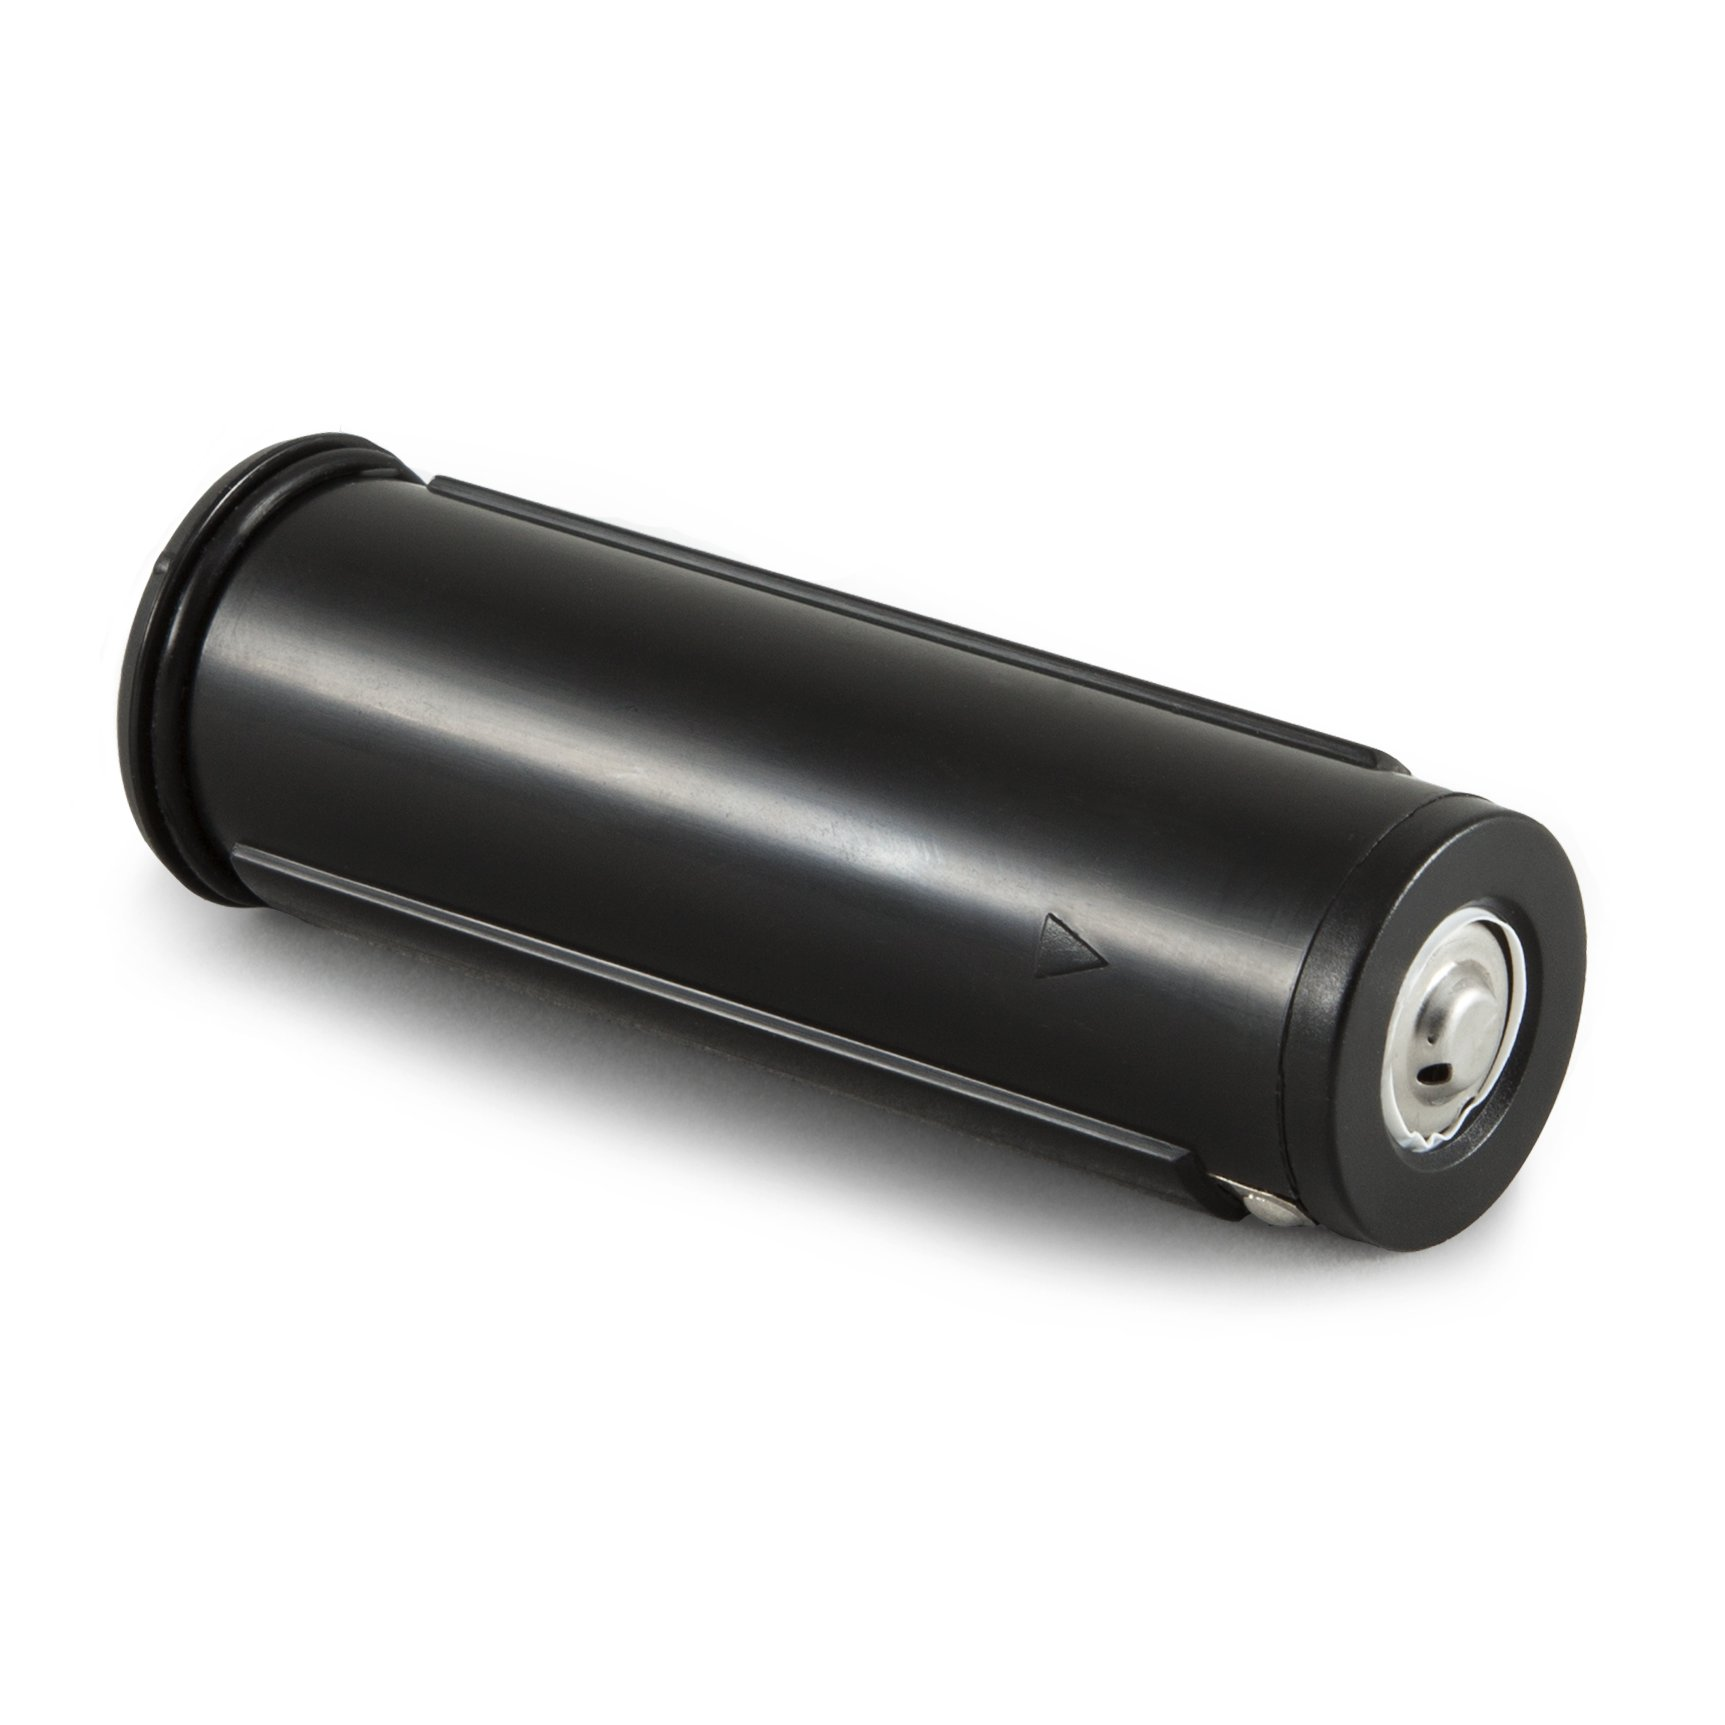 Cycle Torch Li-ion Rechargeable battery for Shark 550R